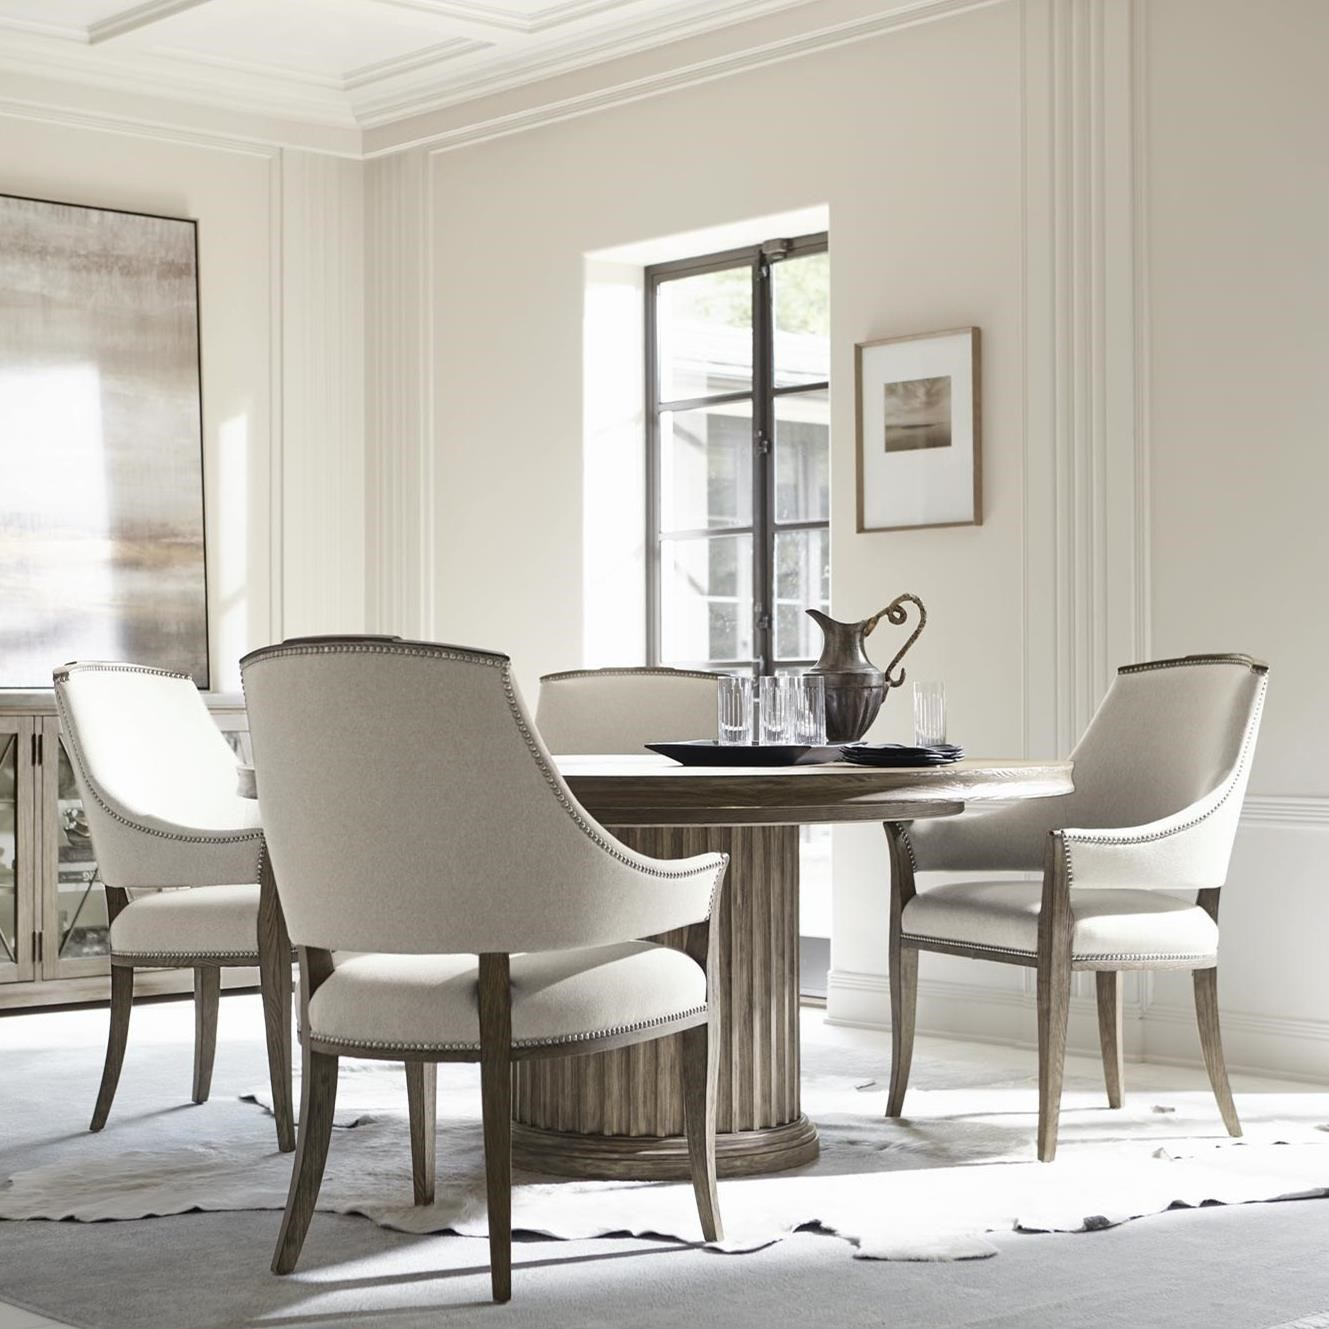 Canyon Ridge 5-Piece Table and Chair Set by Bernhardt at Fisher Home Furnishings